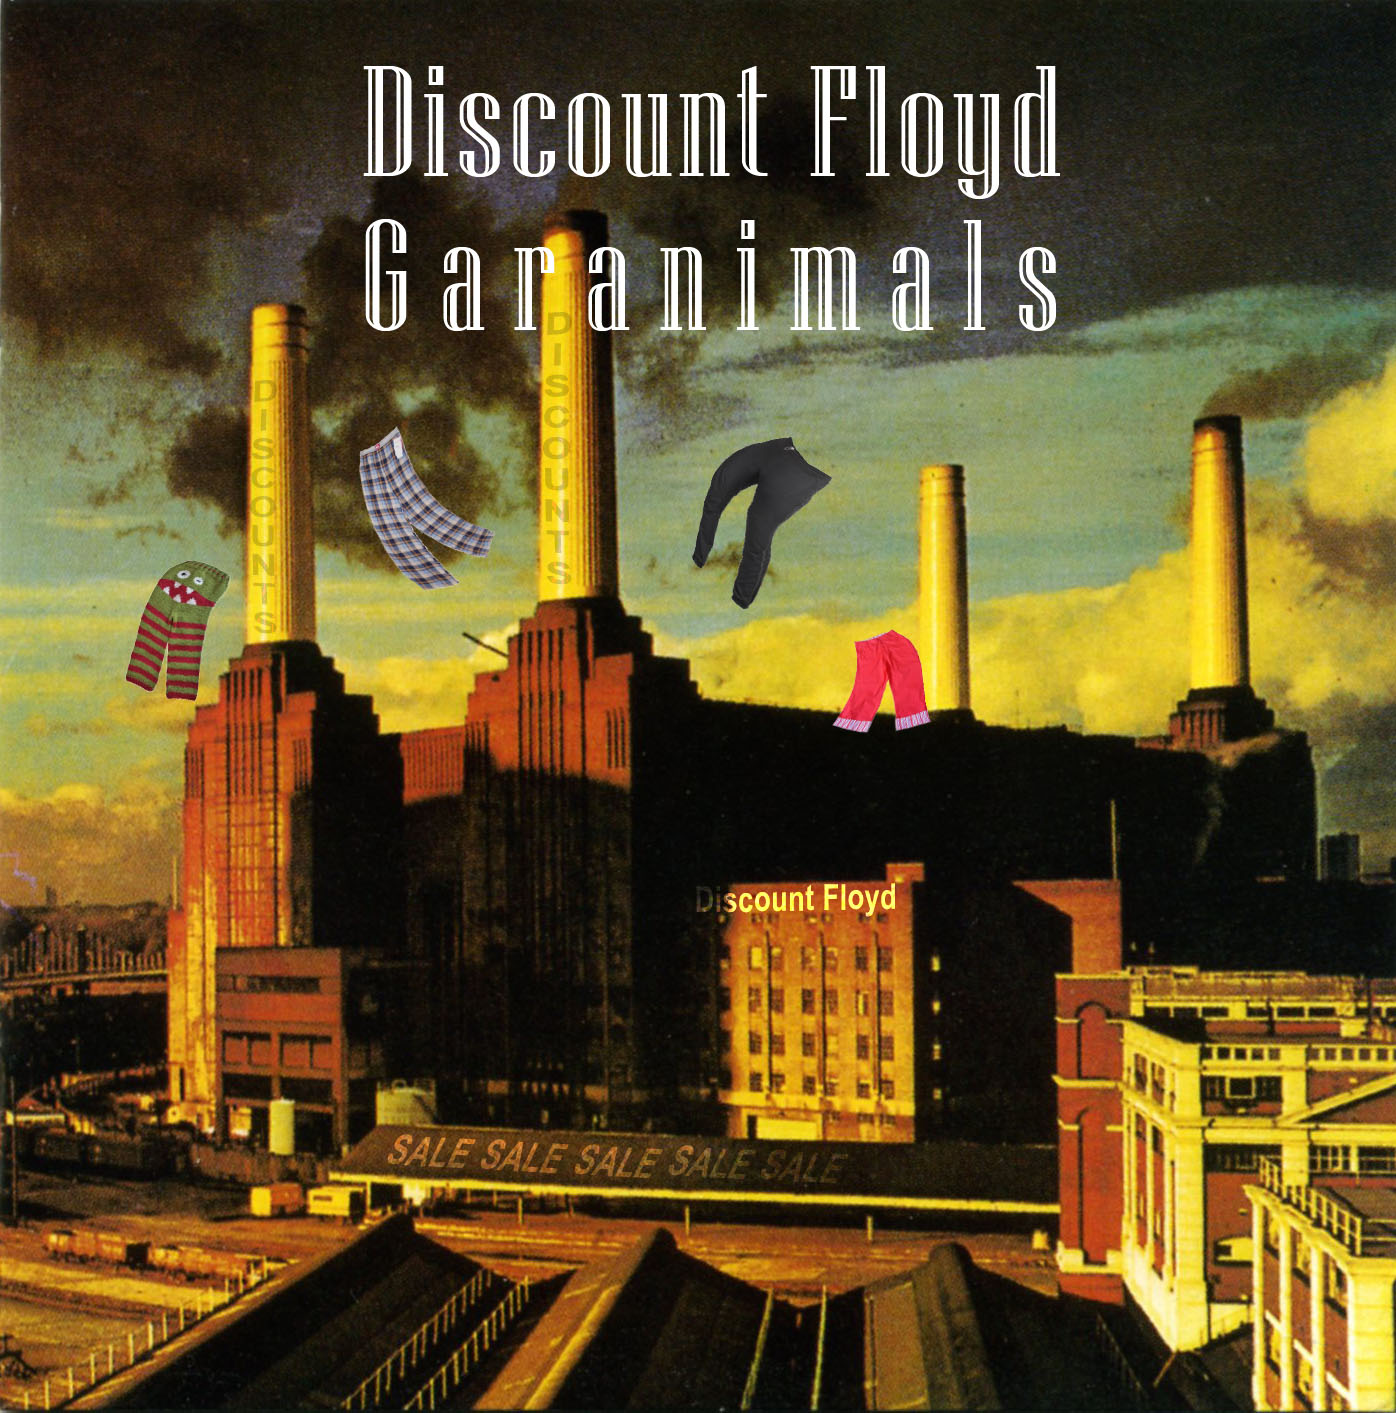 Album cover parody of Animals by Pink Floyd